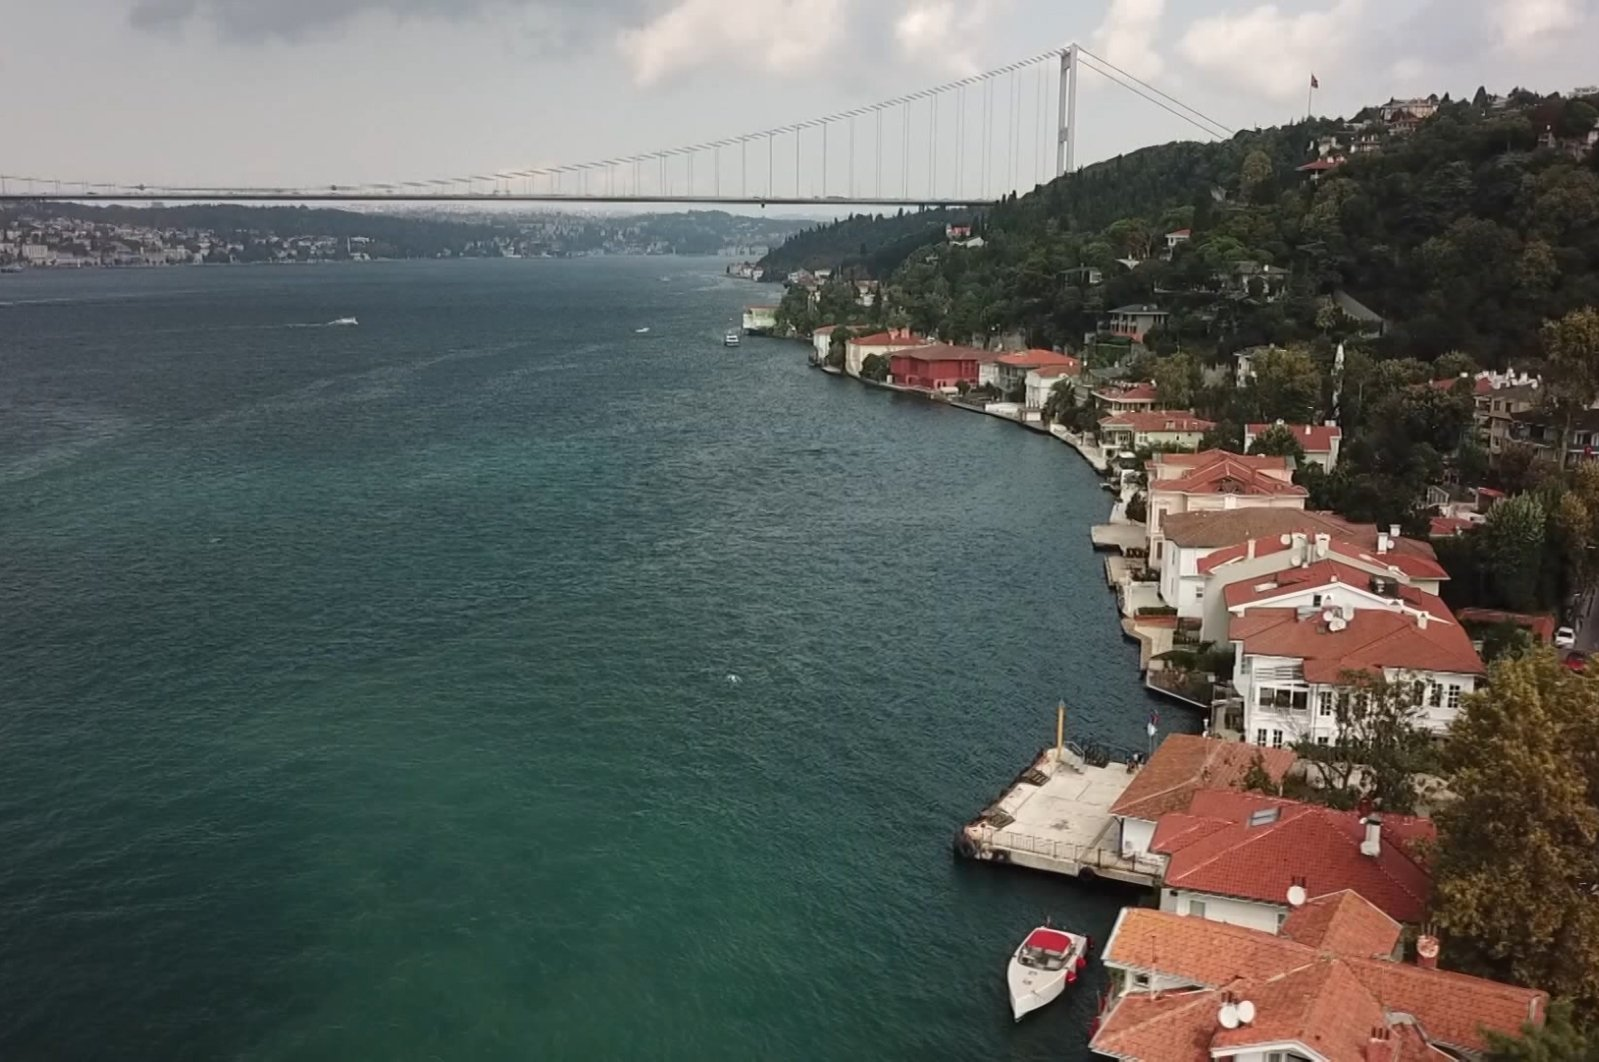 A general view of waterfront houses by the Bosporus, in Istanbul, Turkey, June 19, 2021. (DHA Photo)